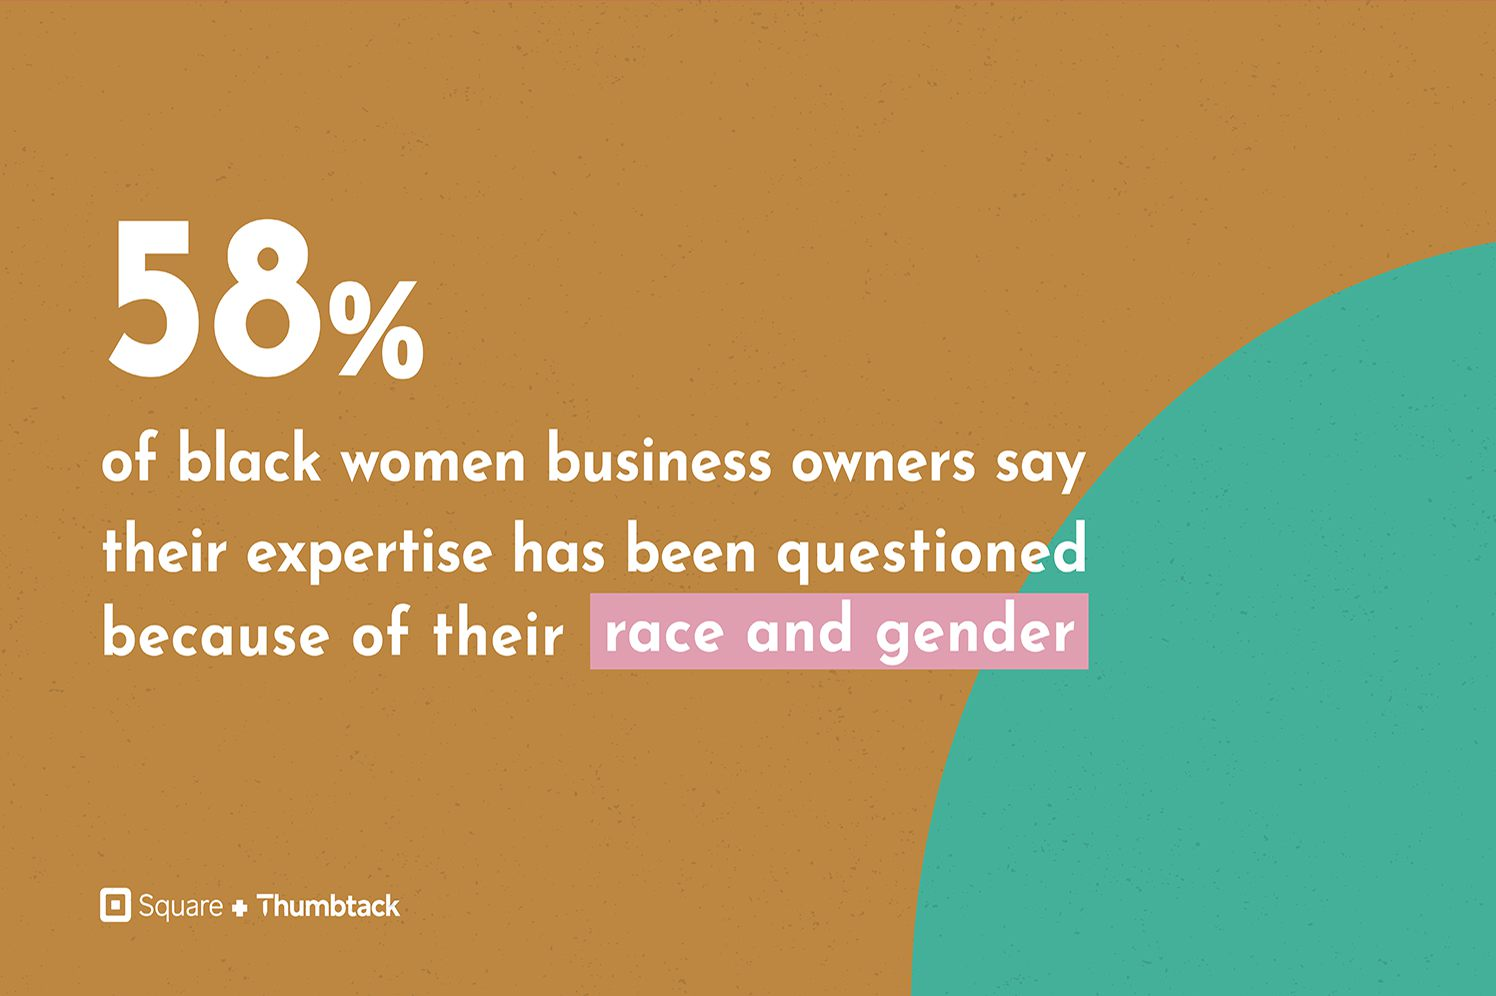 graphic data point for african american women